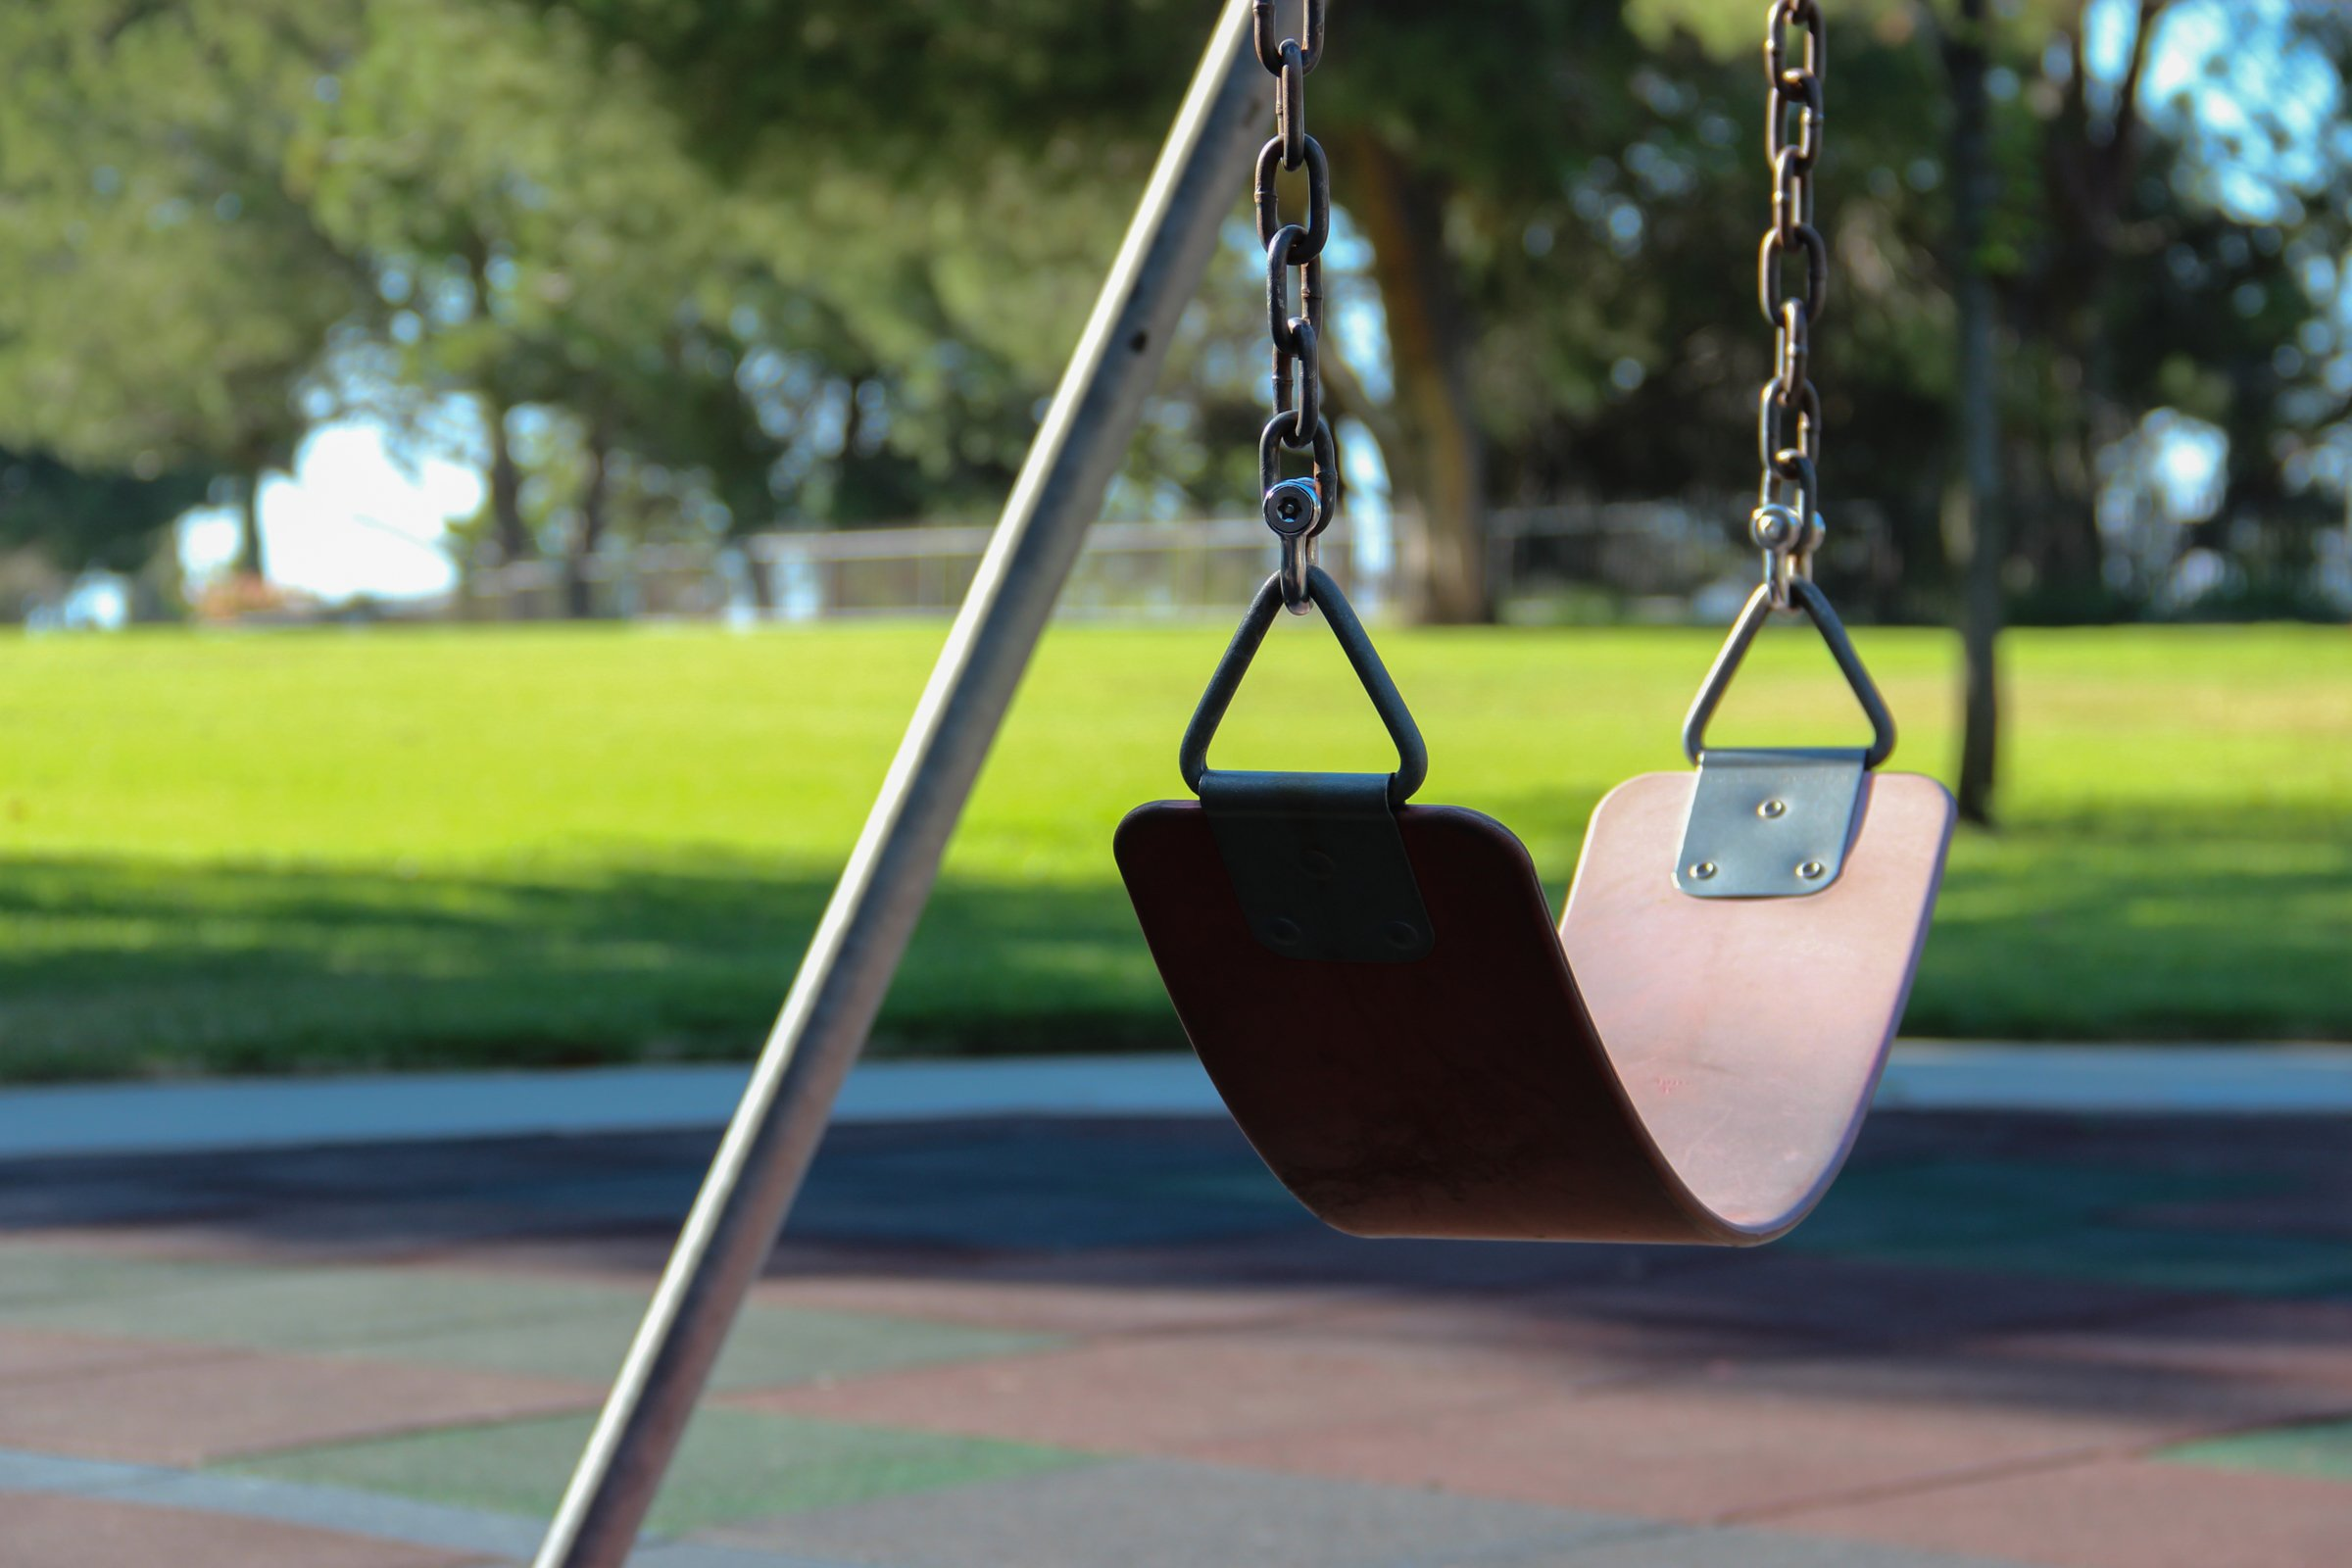 Stationary Swing At Park